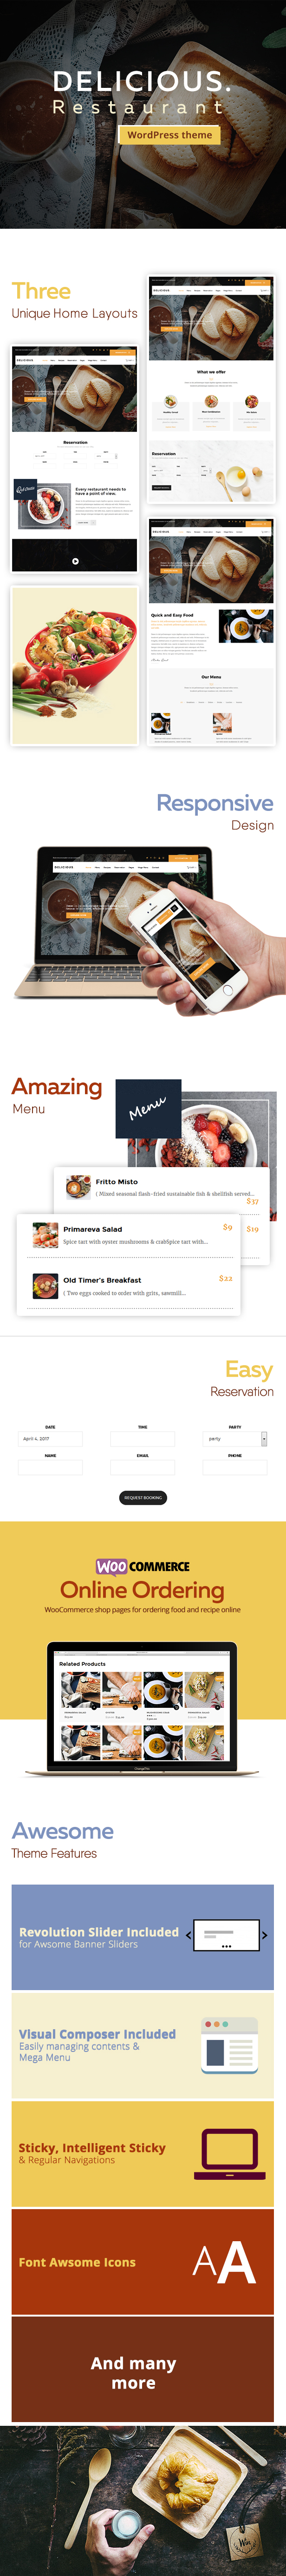 Latest Photo of  Delicious Table Booking Restaurant WordPress Theme